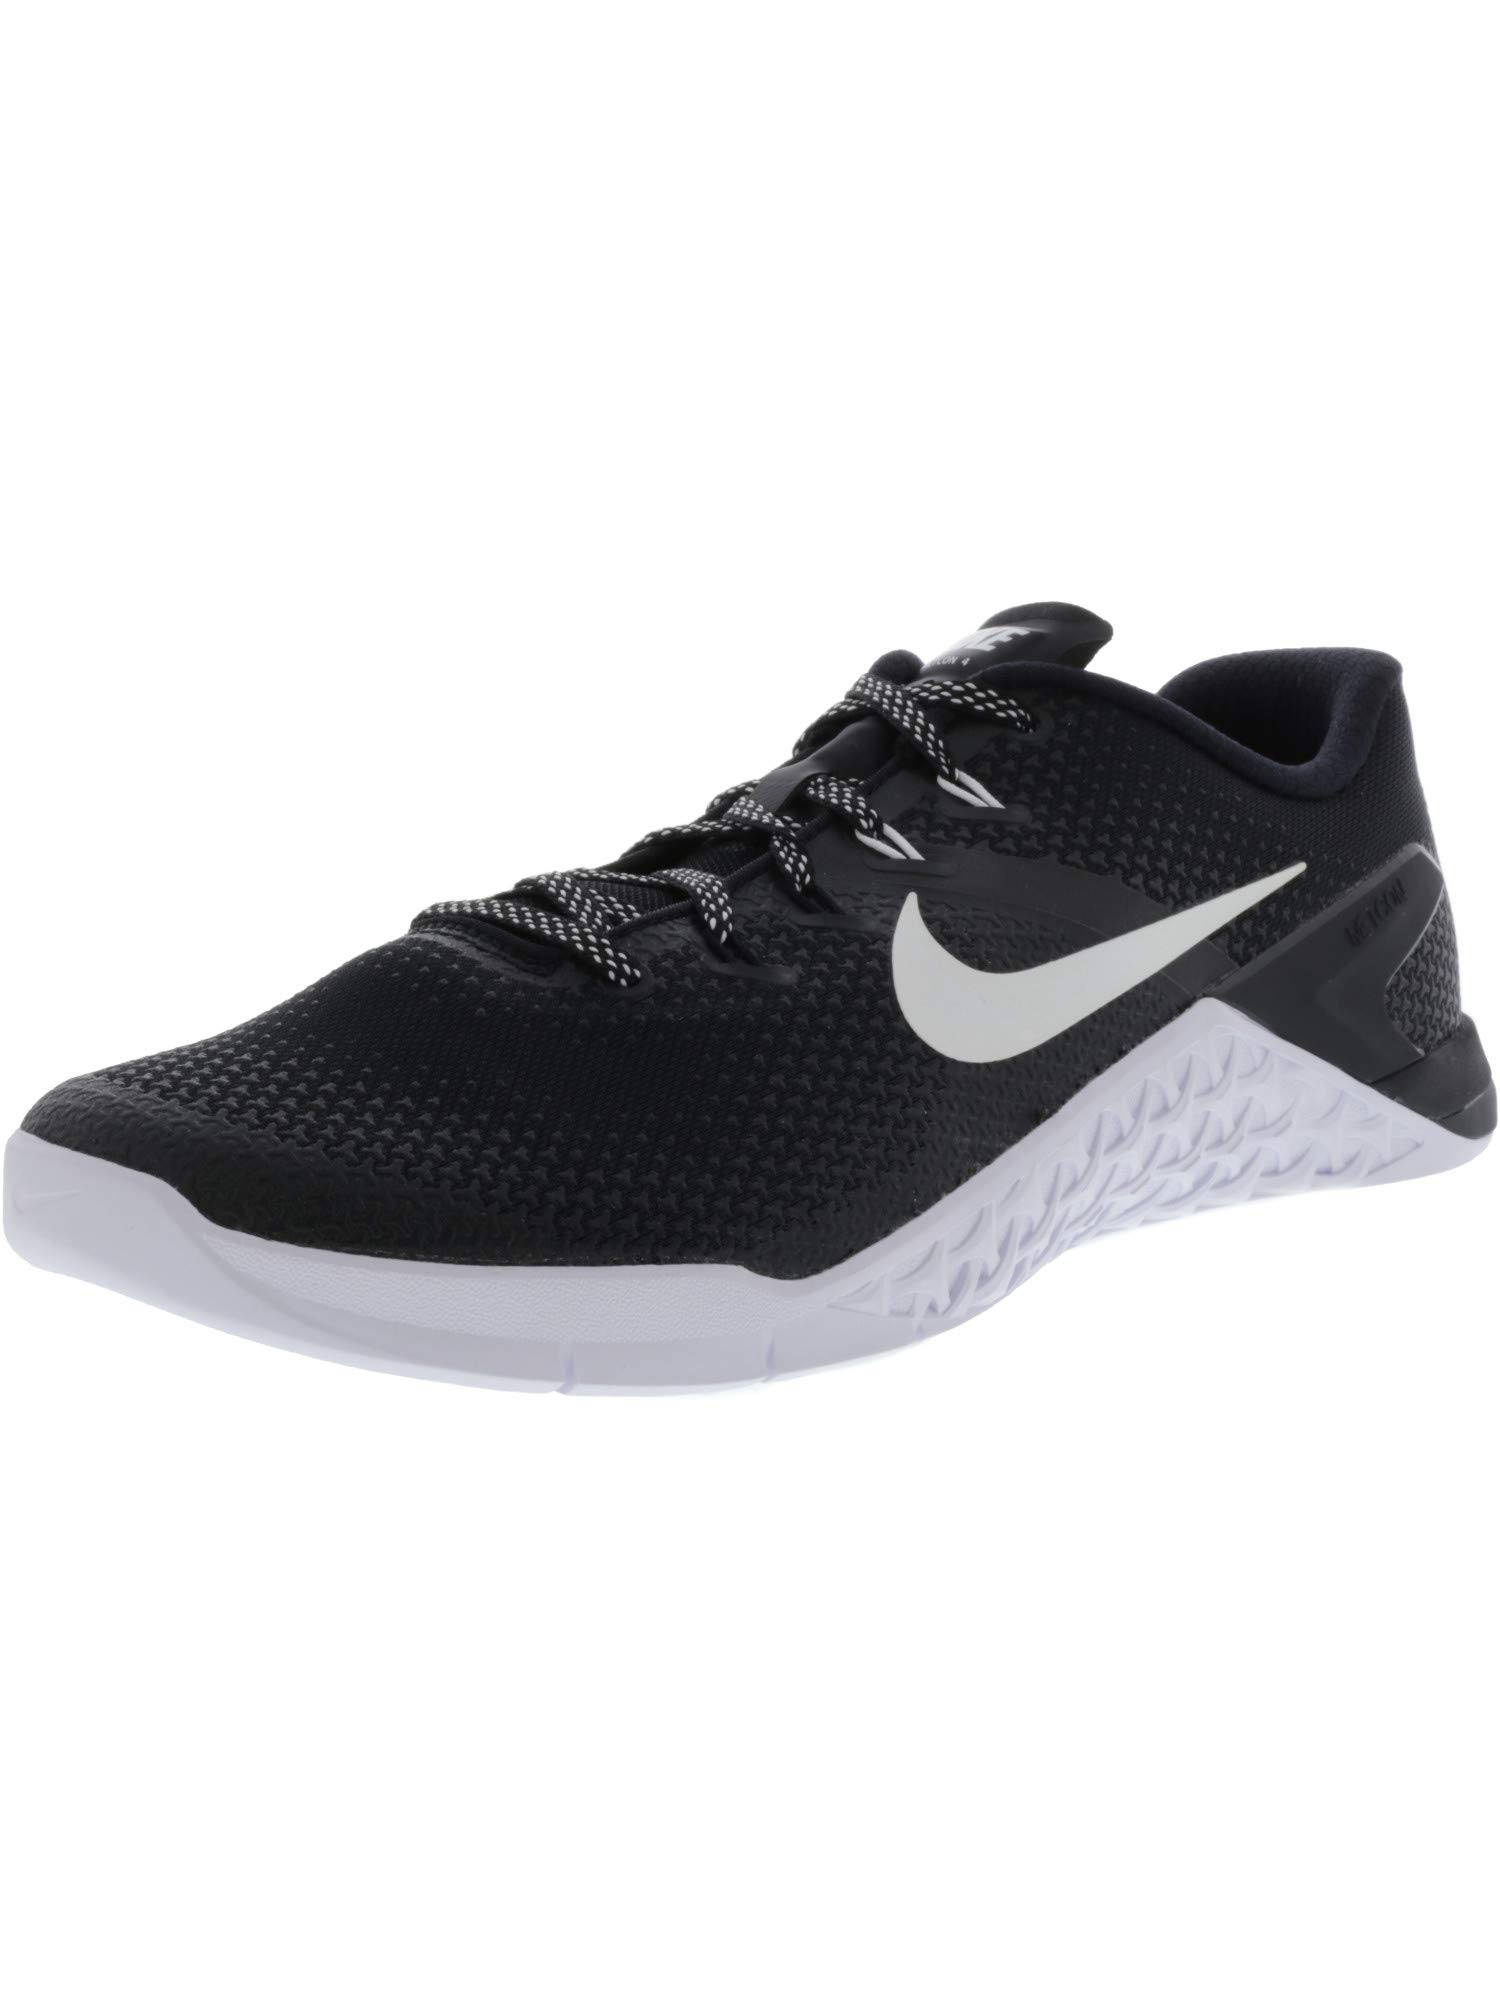 Nike Men's Metcon 4 Black/White Ankle-High Cross Trainer Shoe - 7M by Nike (Image #1)